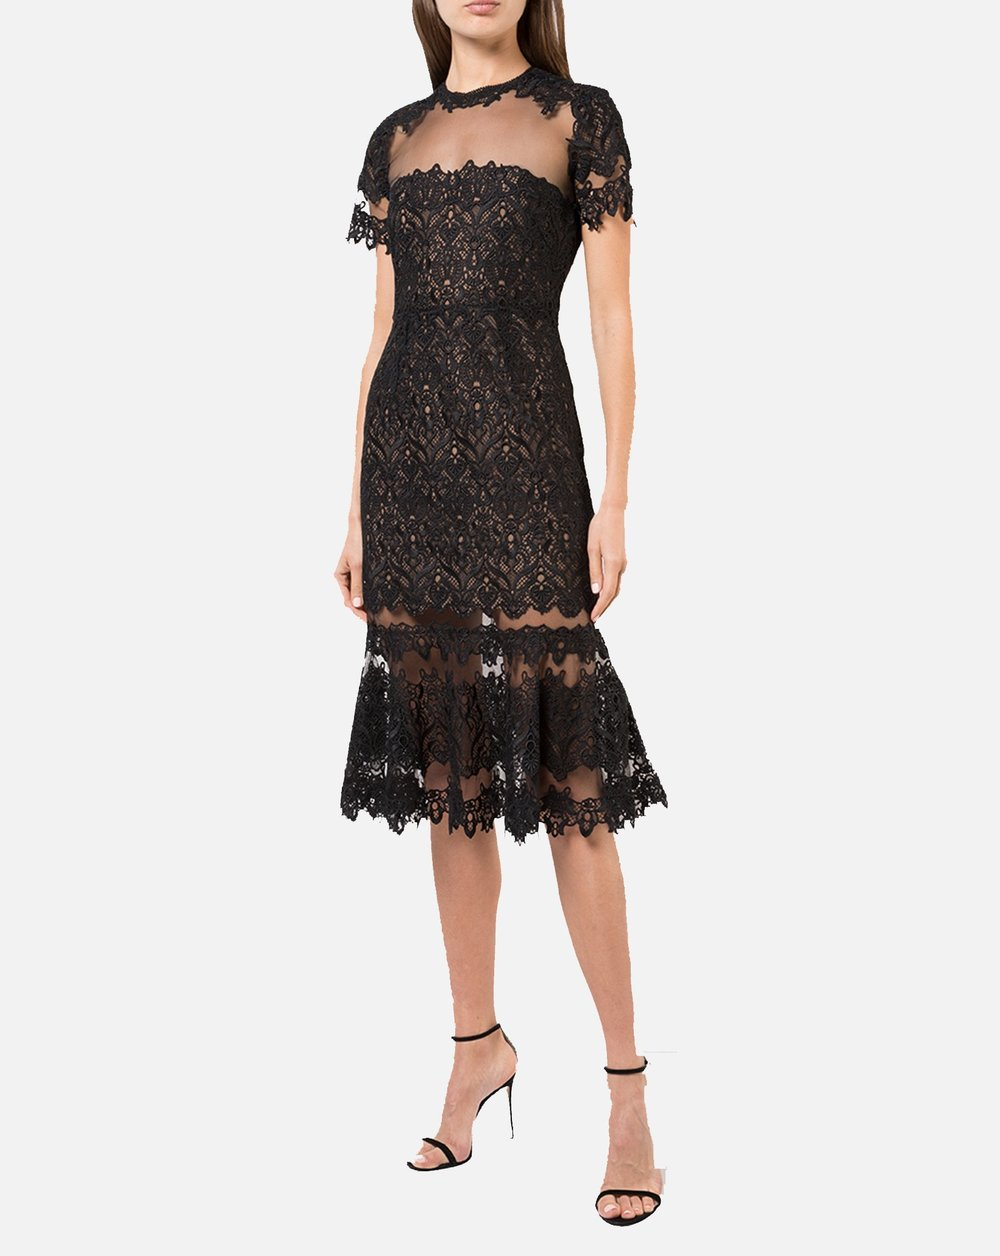 Guipure Lace Sheer Ruffle Dress in Black -Reservoir LA - Dress it up with this classy lace sheer ruffle dress. For going to a nice dinner or out dancing, this dress is sure to make you look and feel your best any night out.